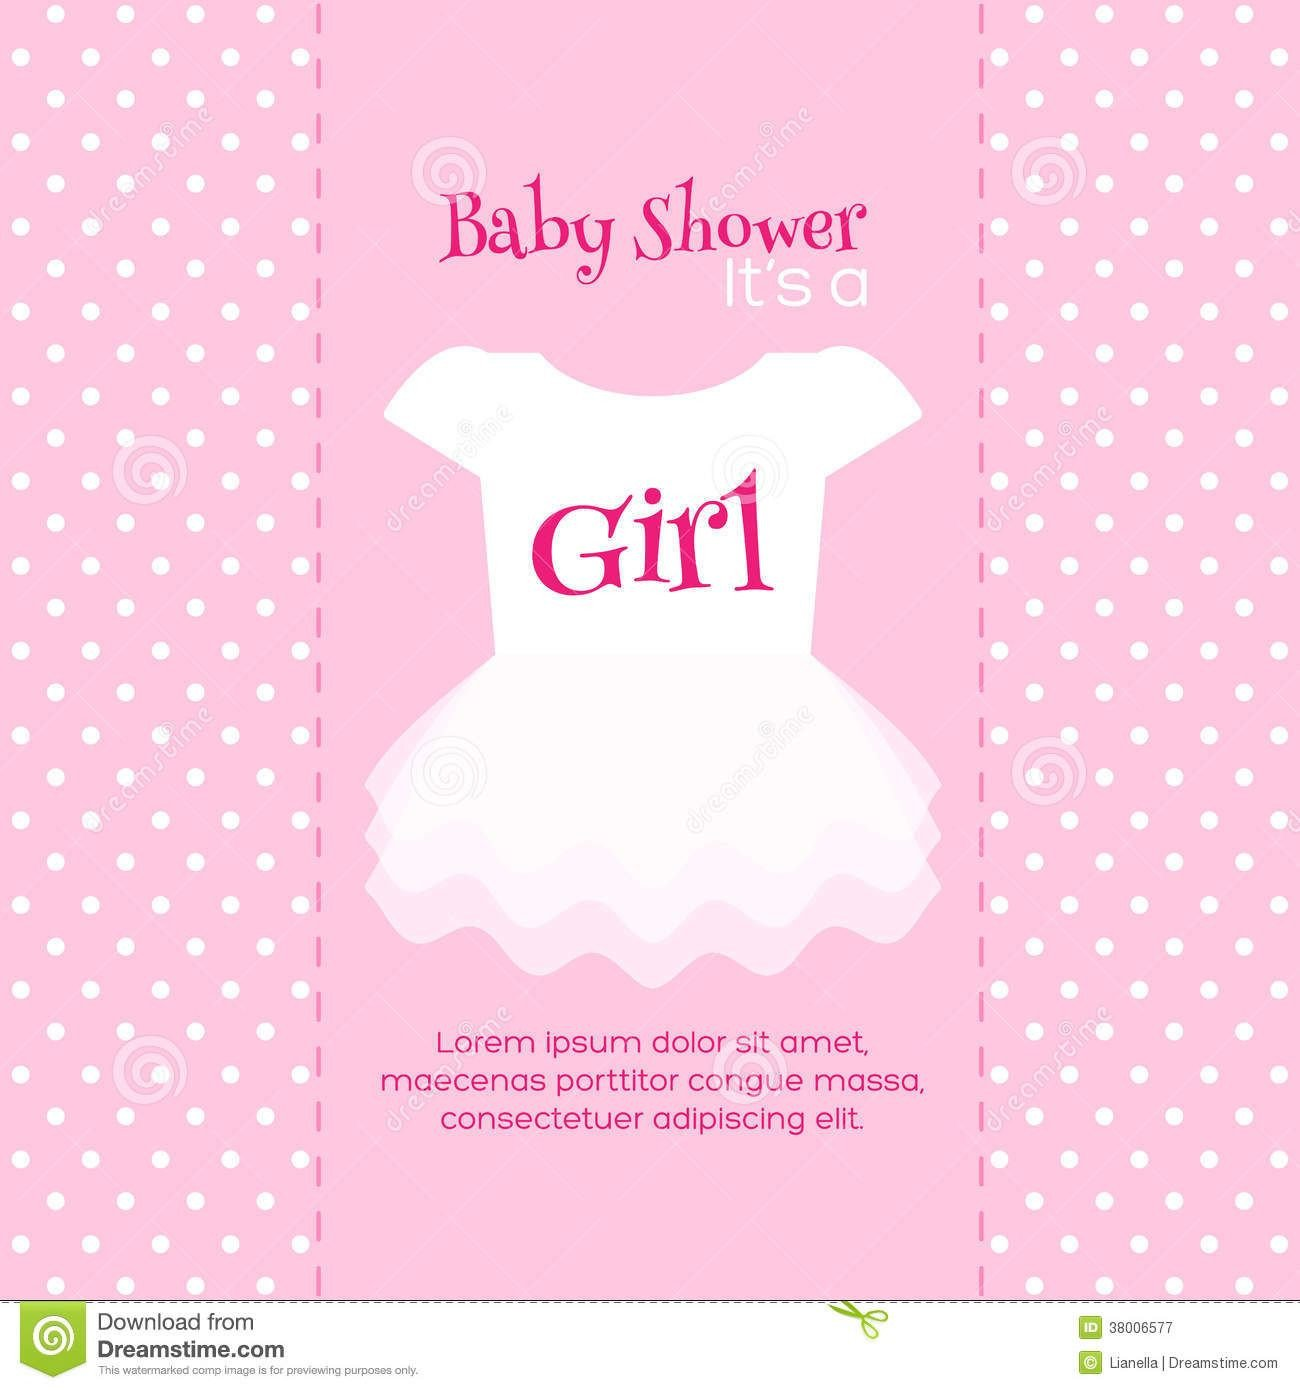 Baby Shower Invitation Free Template Design Free Printable Baby Shower Invitations for Girls